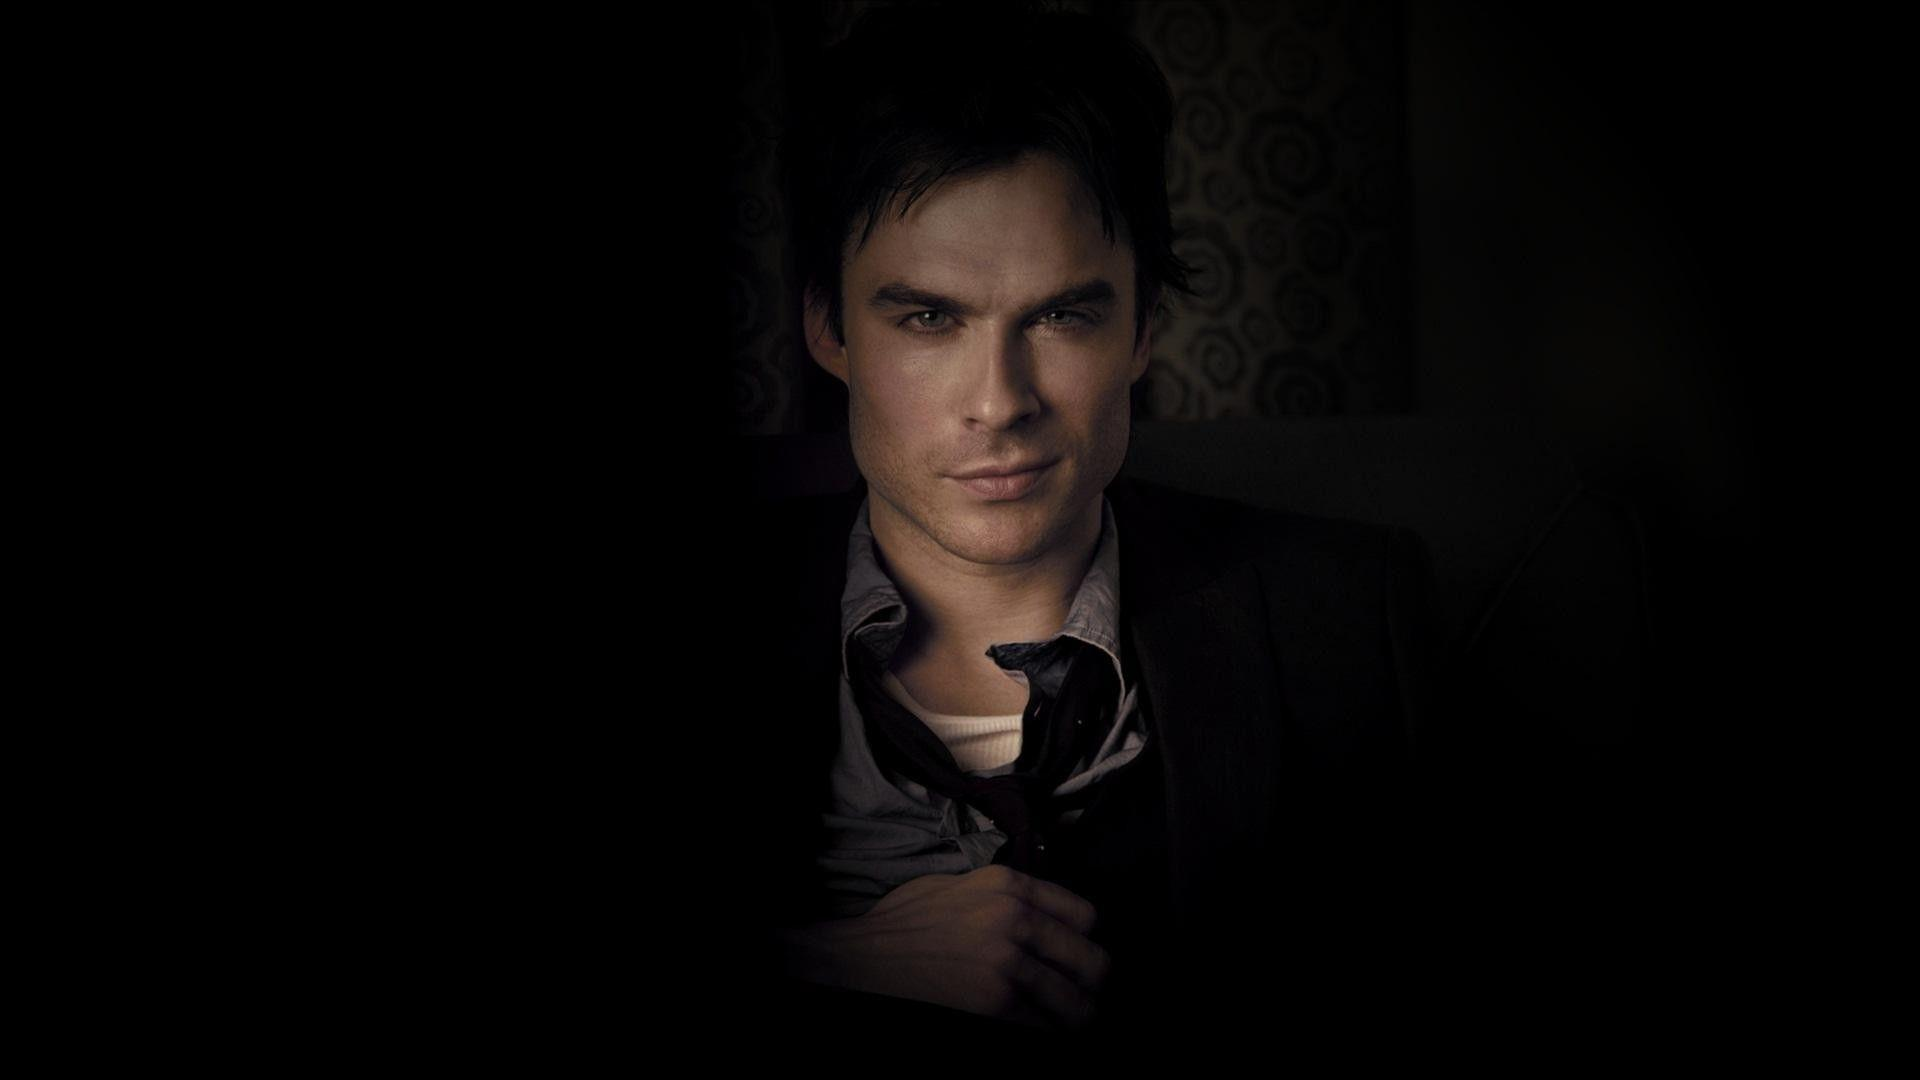 Ian Somerhalder Wallpapers 2018